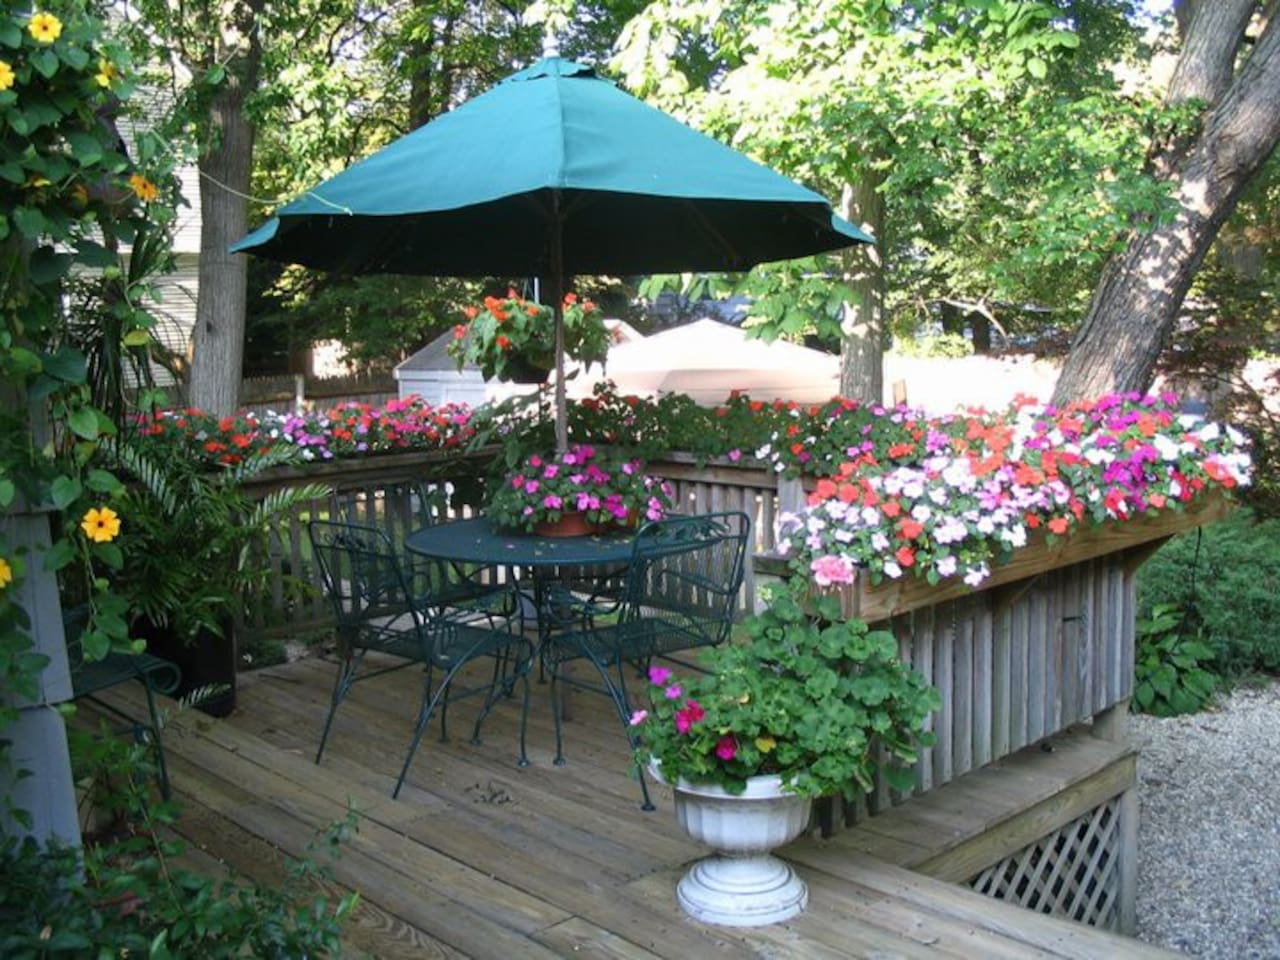 Large deck with multiple sitting areas overlooks Japanese style garden with water features. Enjoy your breakfast or evening wine here; you can also cook on a gas grill.